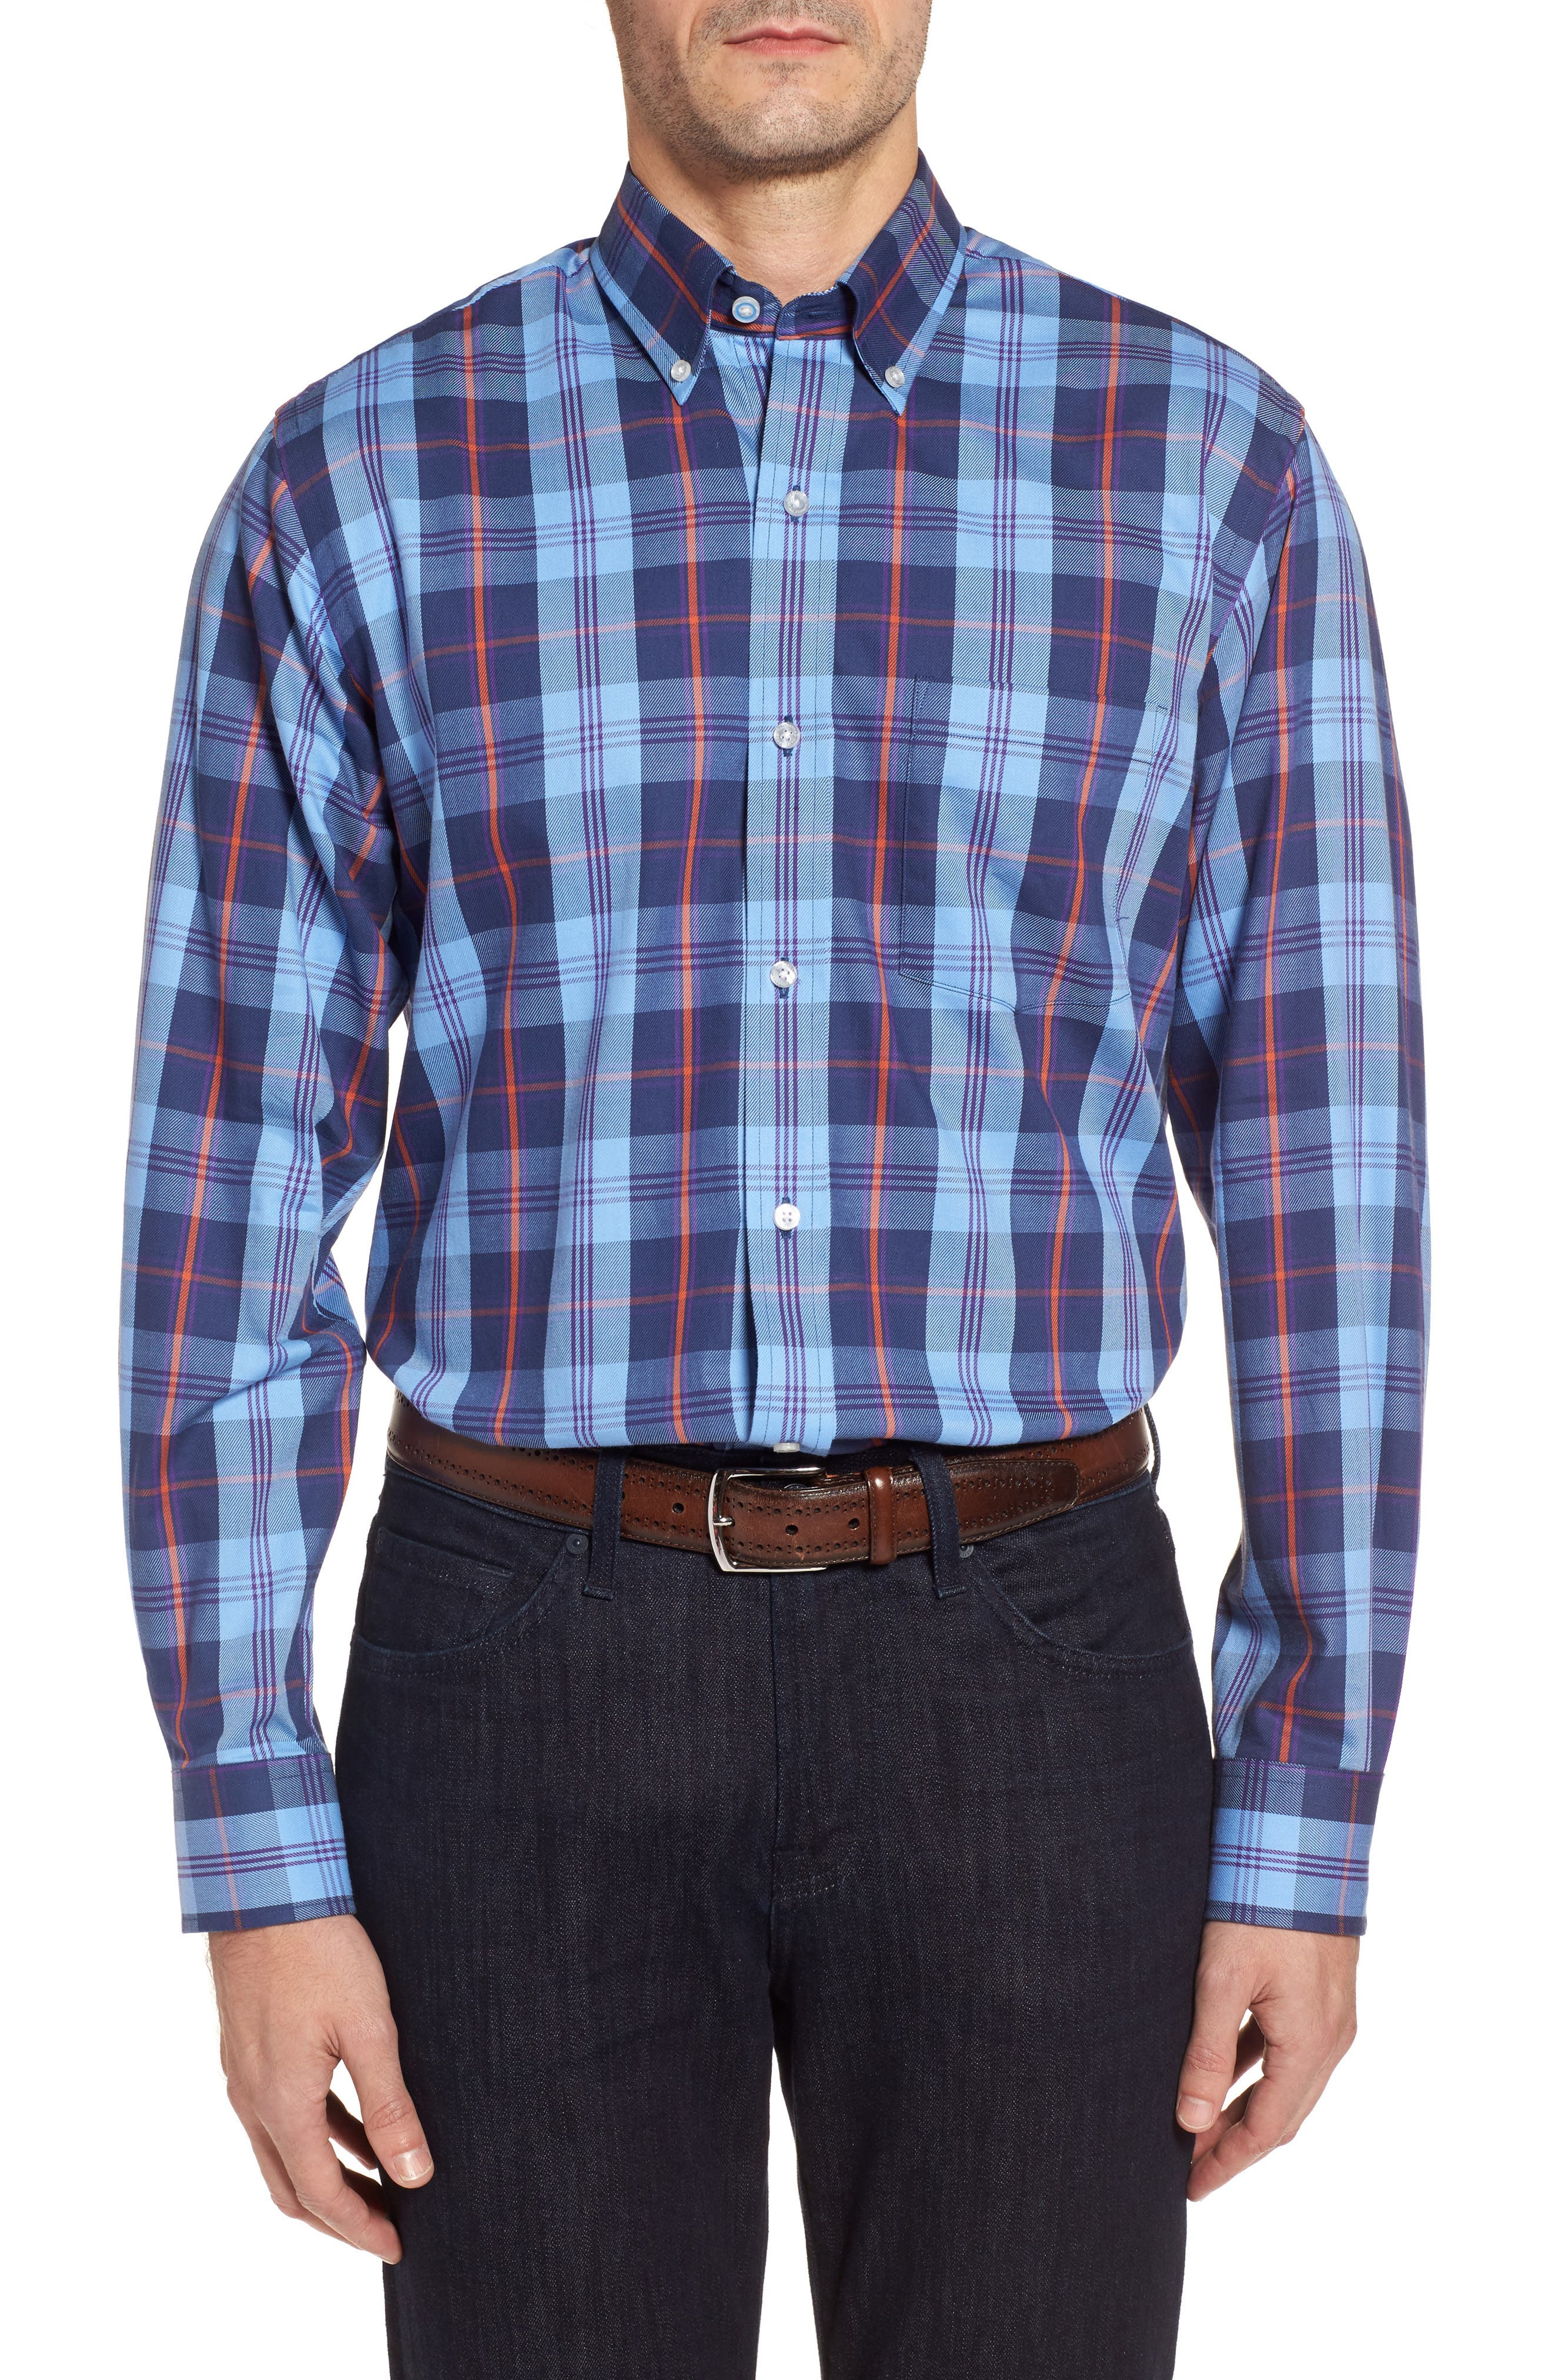 Delcambre Plaid Twill Sport Shirt,                         Main,                         color,